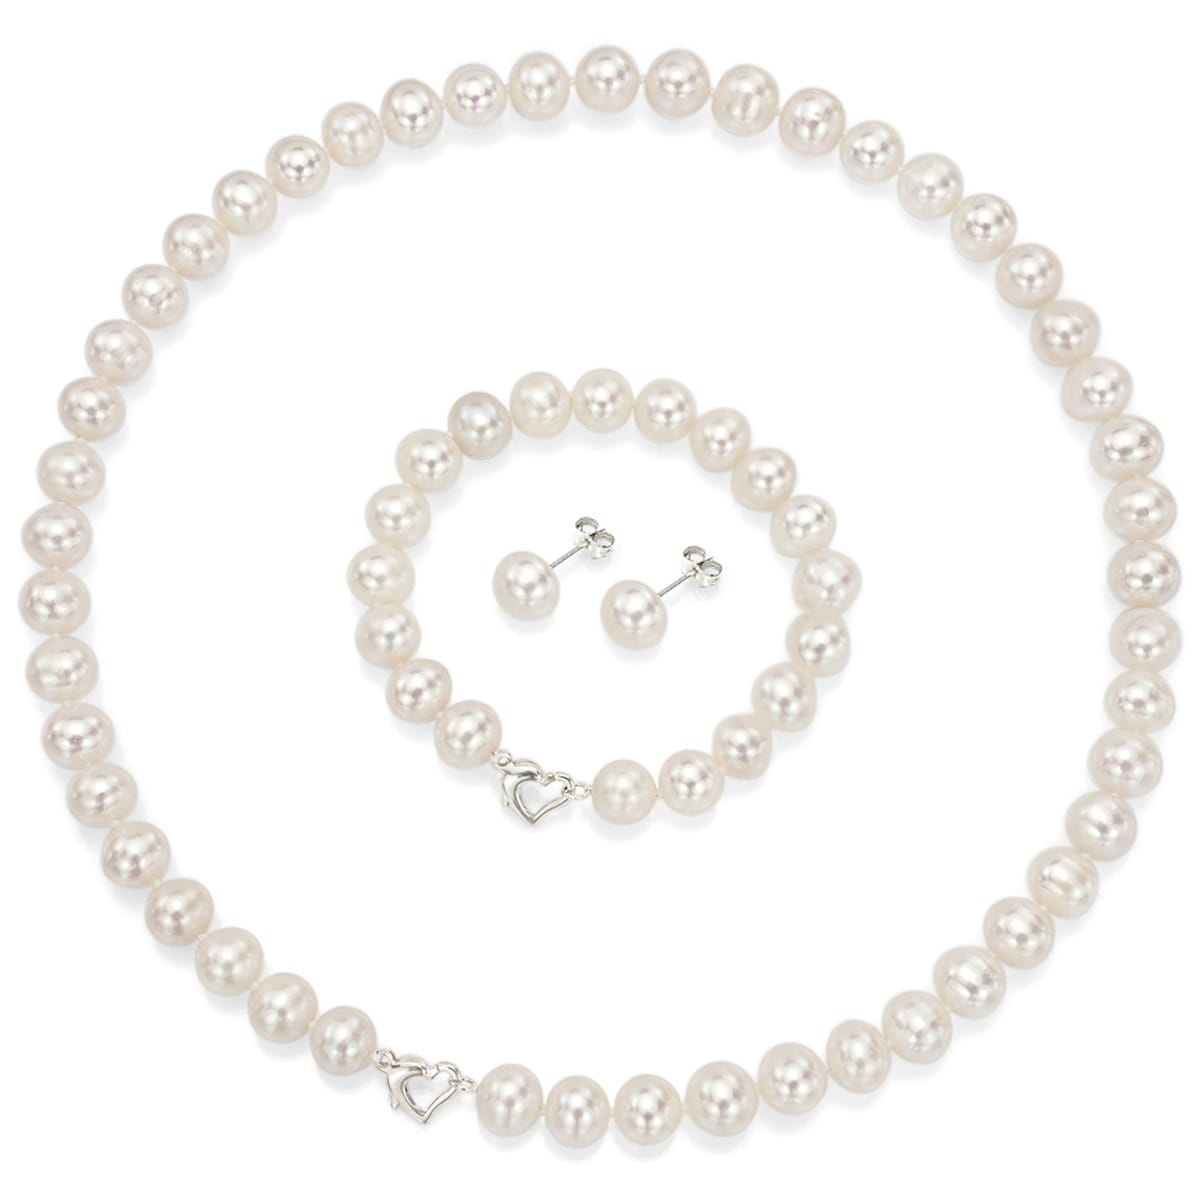 """NEW 8-9mm White Akoya Cultured Pearl Necklace Earring 18/"""" NO BOX"""